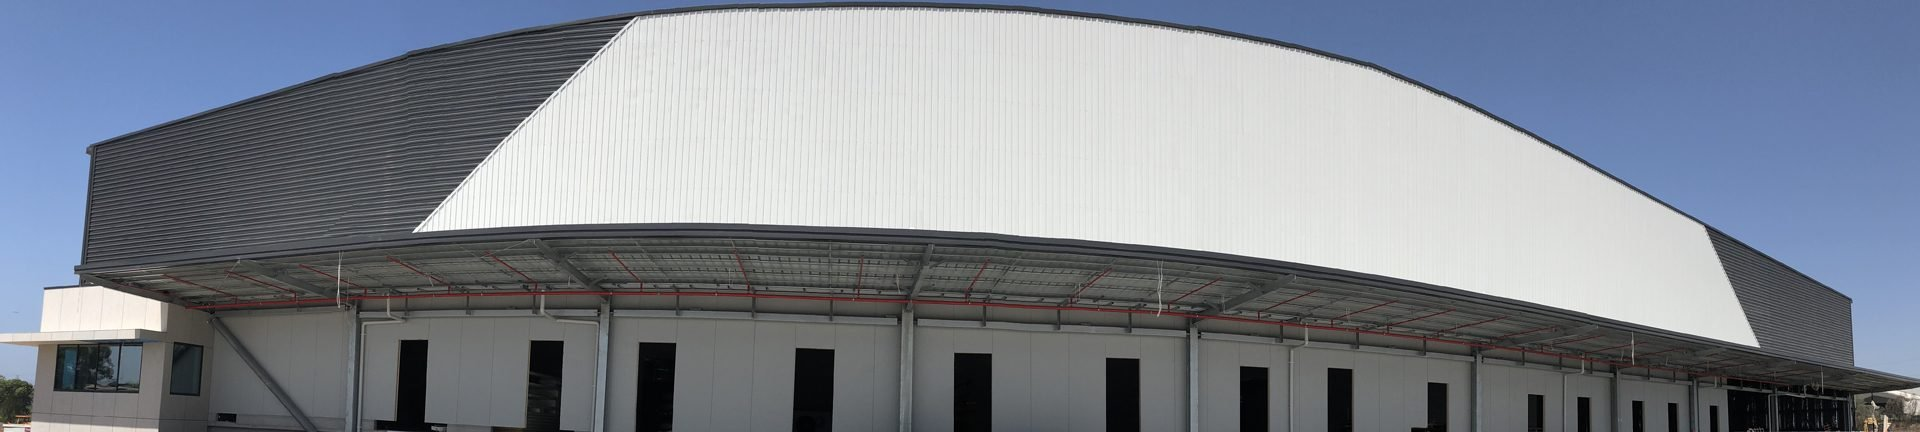 80,000m3 Temperature-Controlled Warehouse